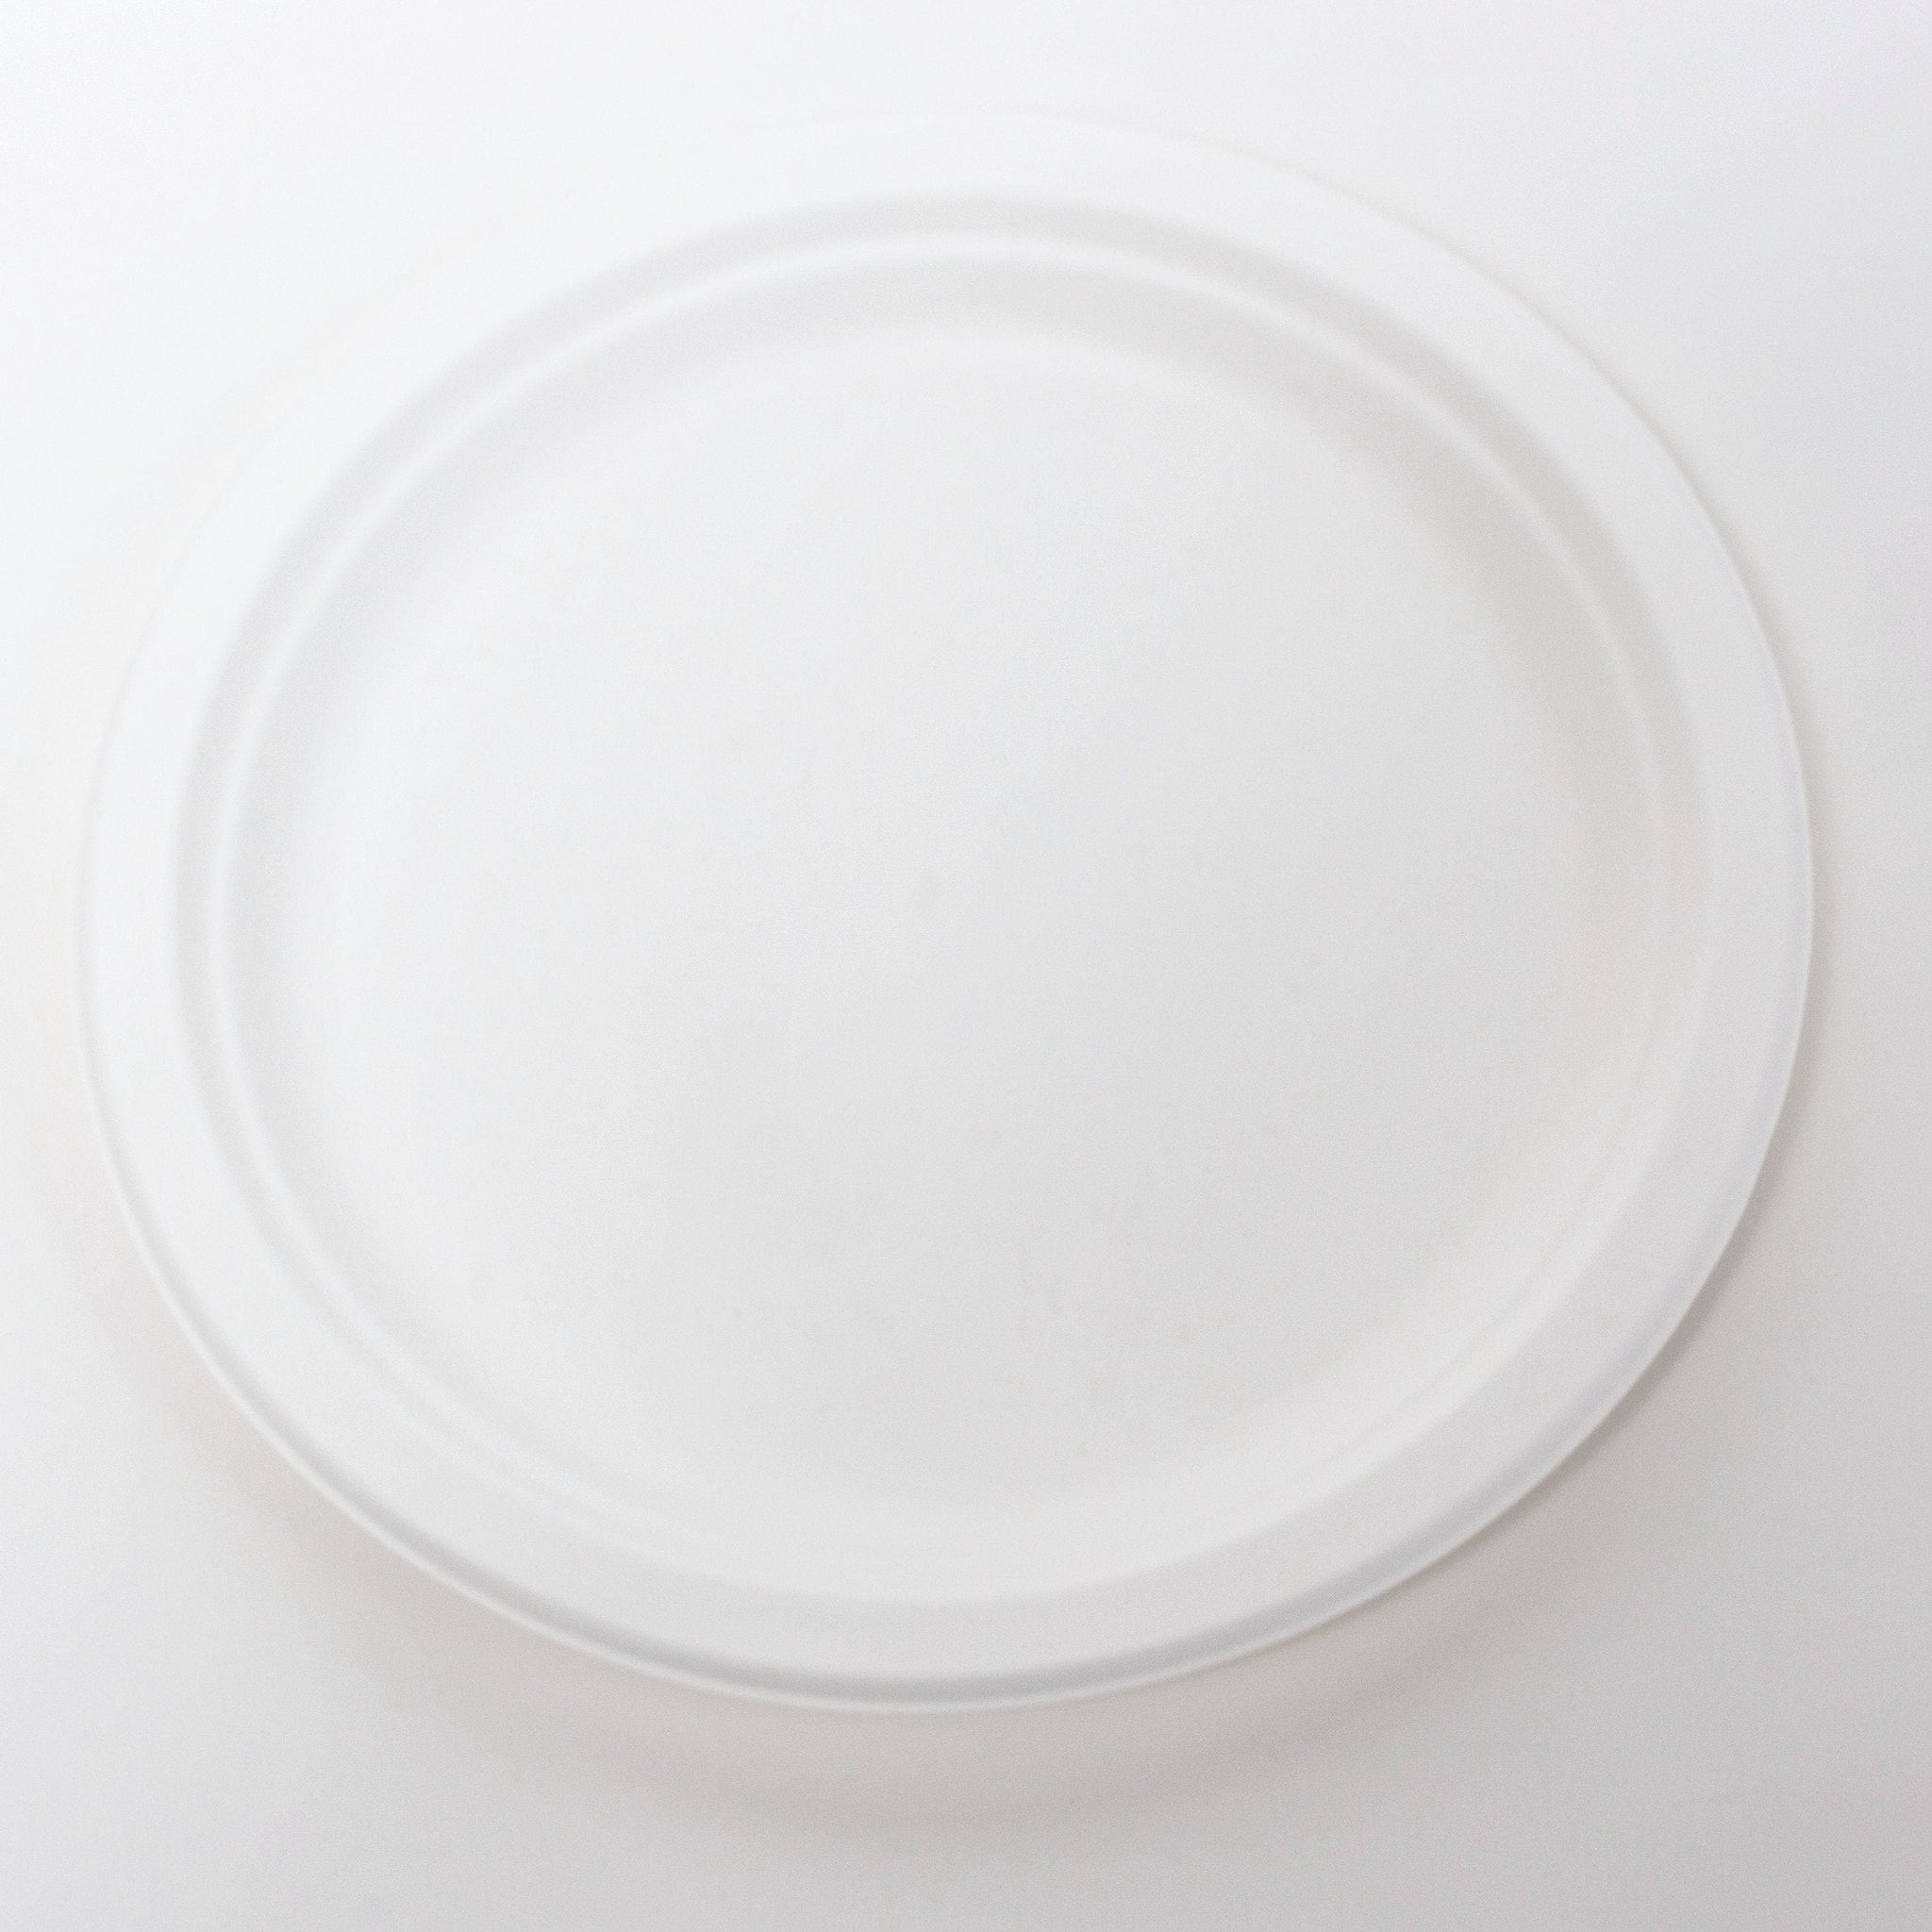 Eco Friendly Compostable plates UK